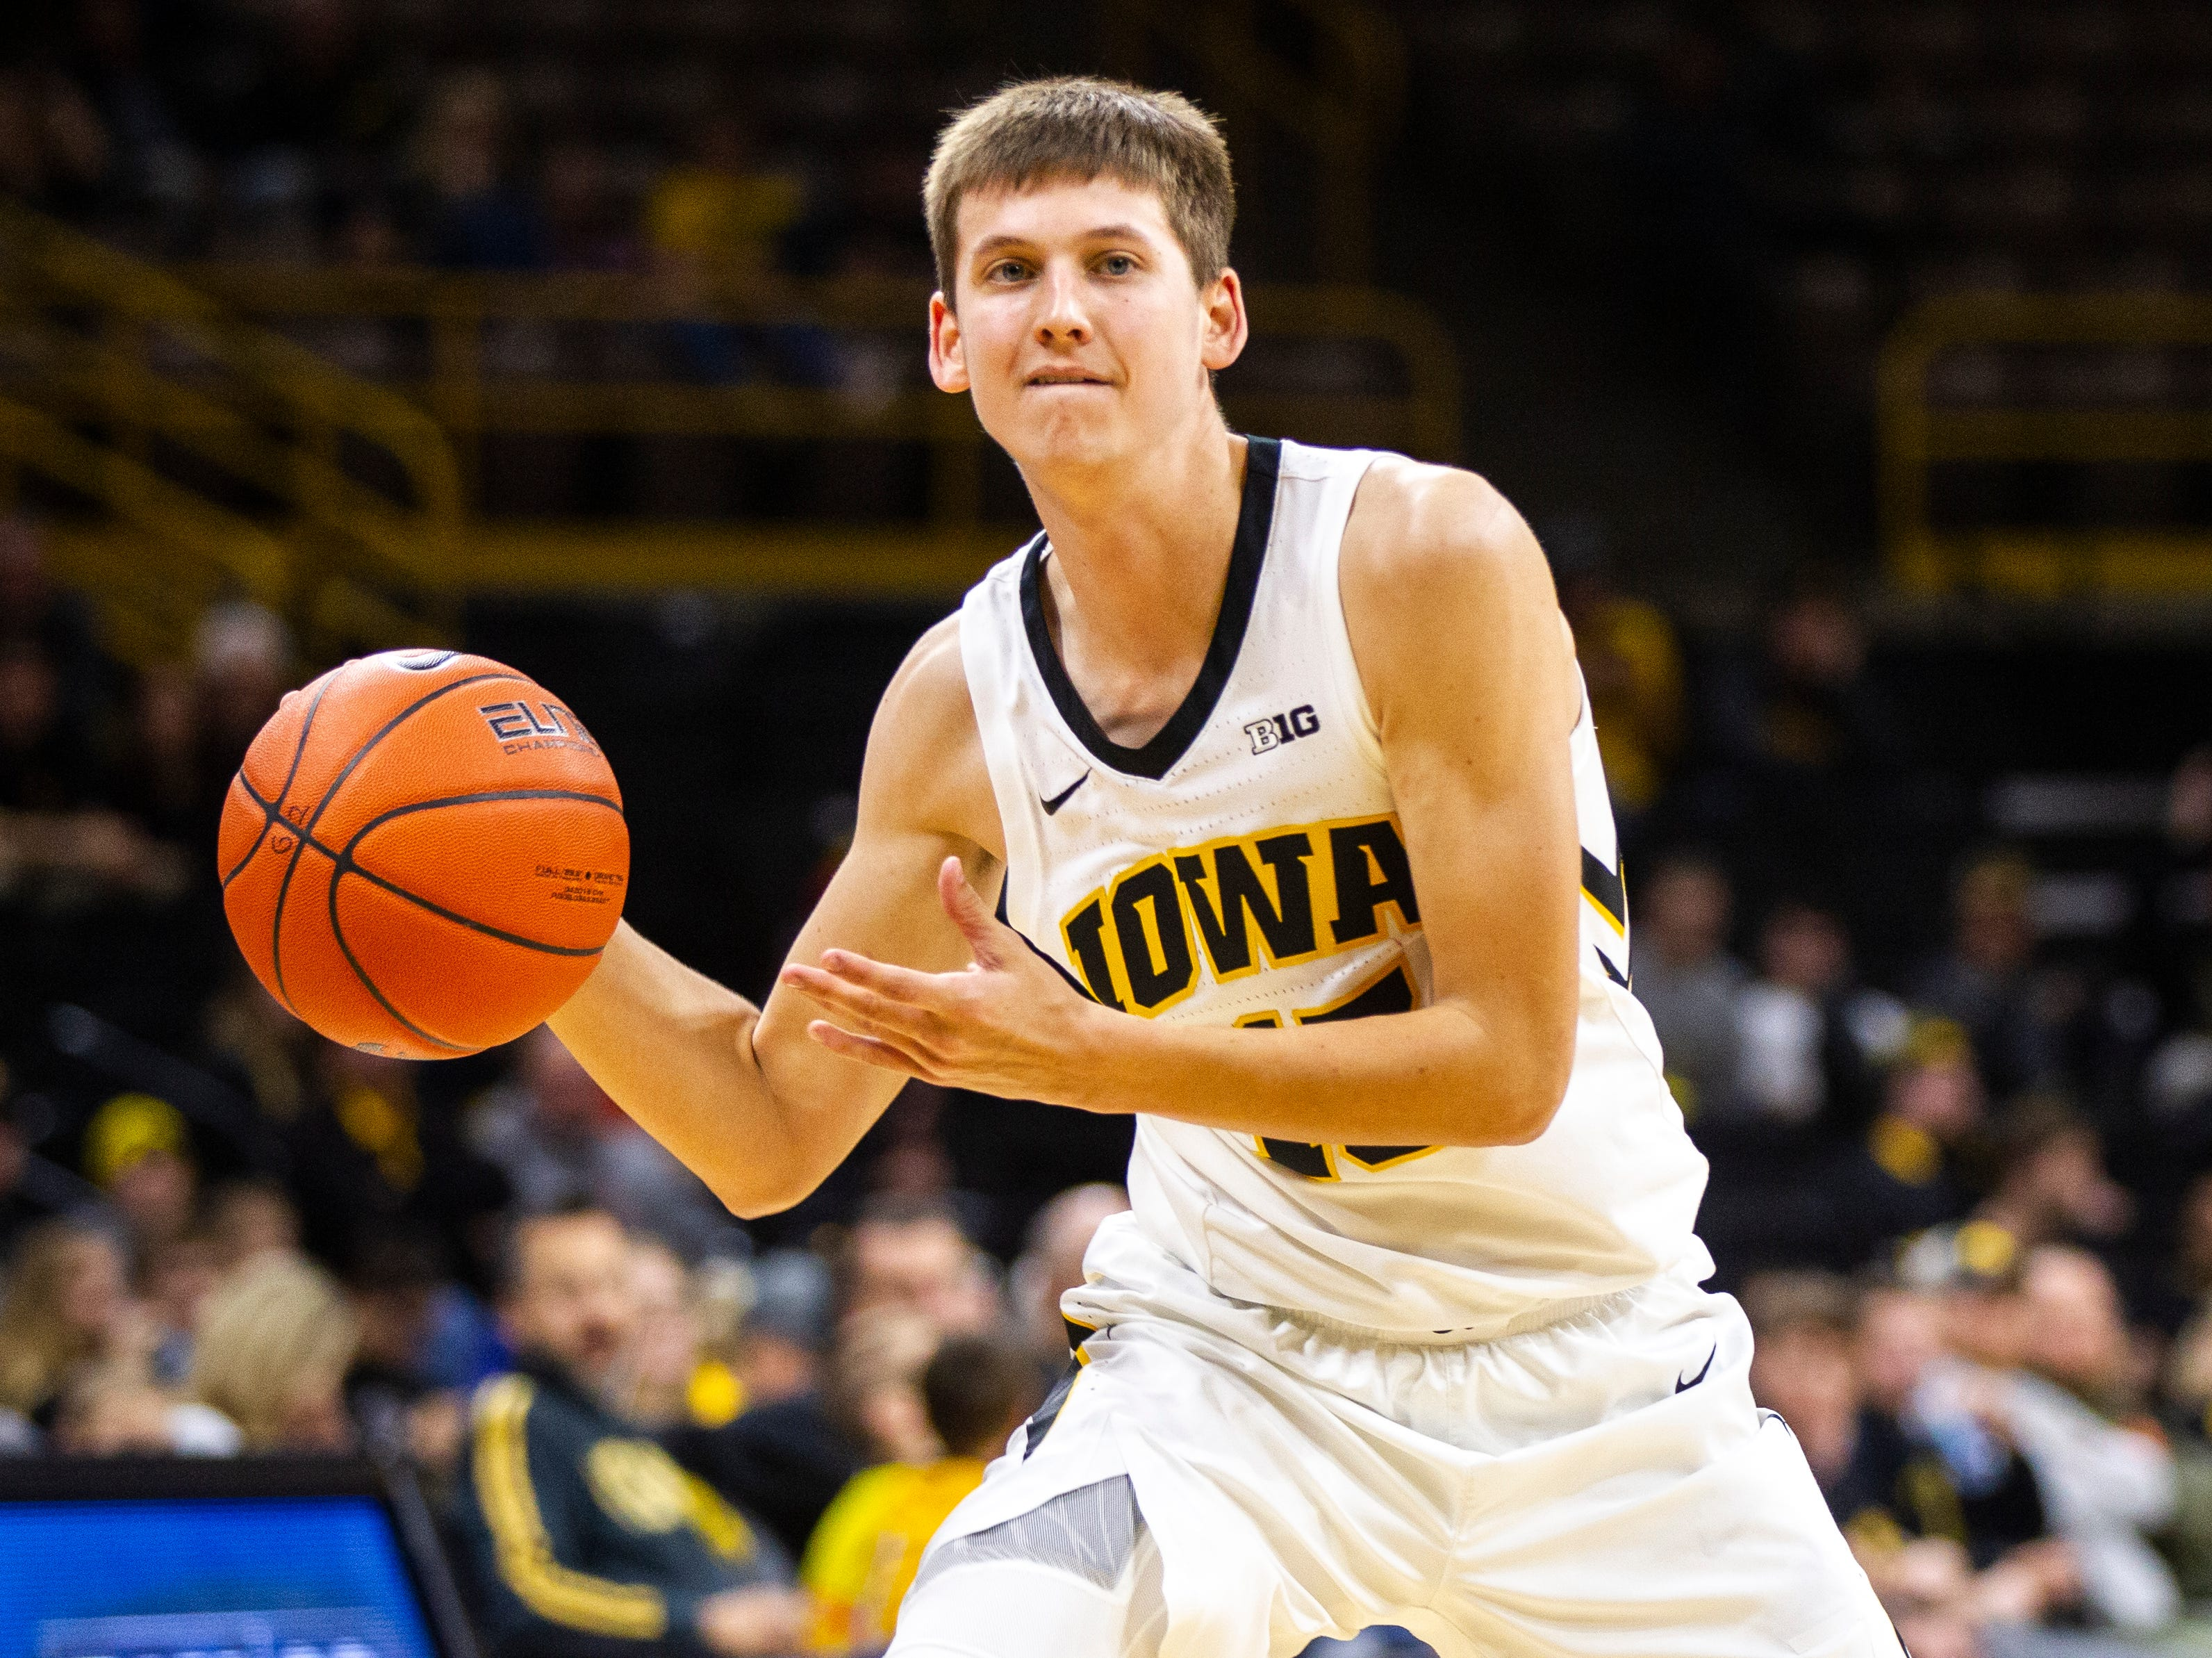 Iowa guard Austin Ash (13) passes to a teammate during an NCAA men's basketball game on Wednesday, Nov. 21, 2018, at Carver-Hawkeye Arena in Iowa City.